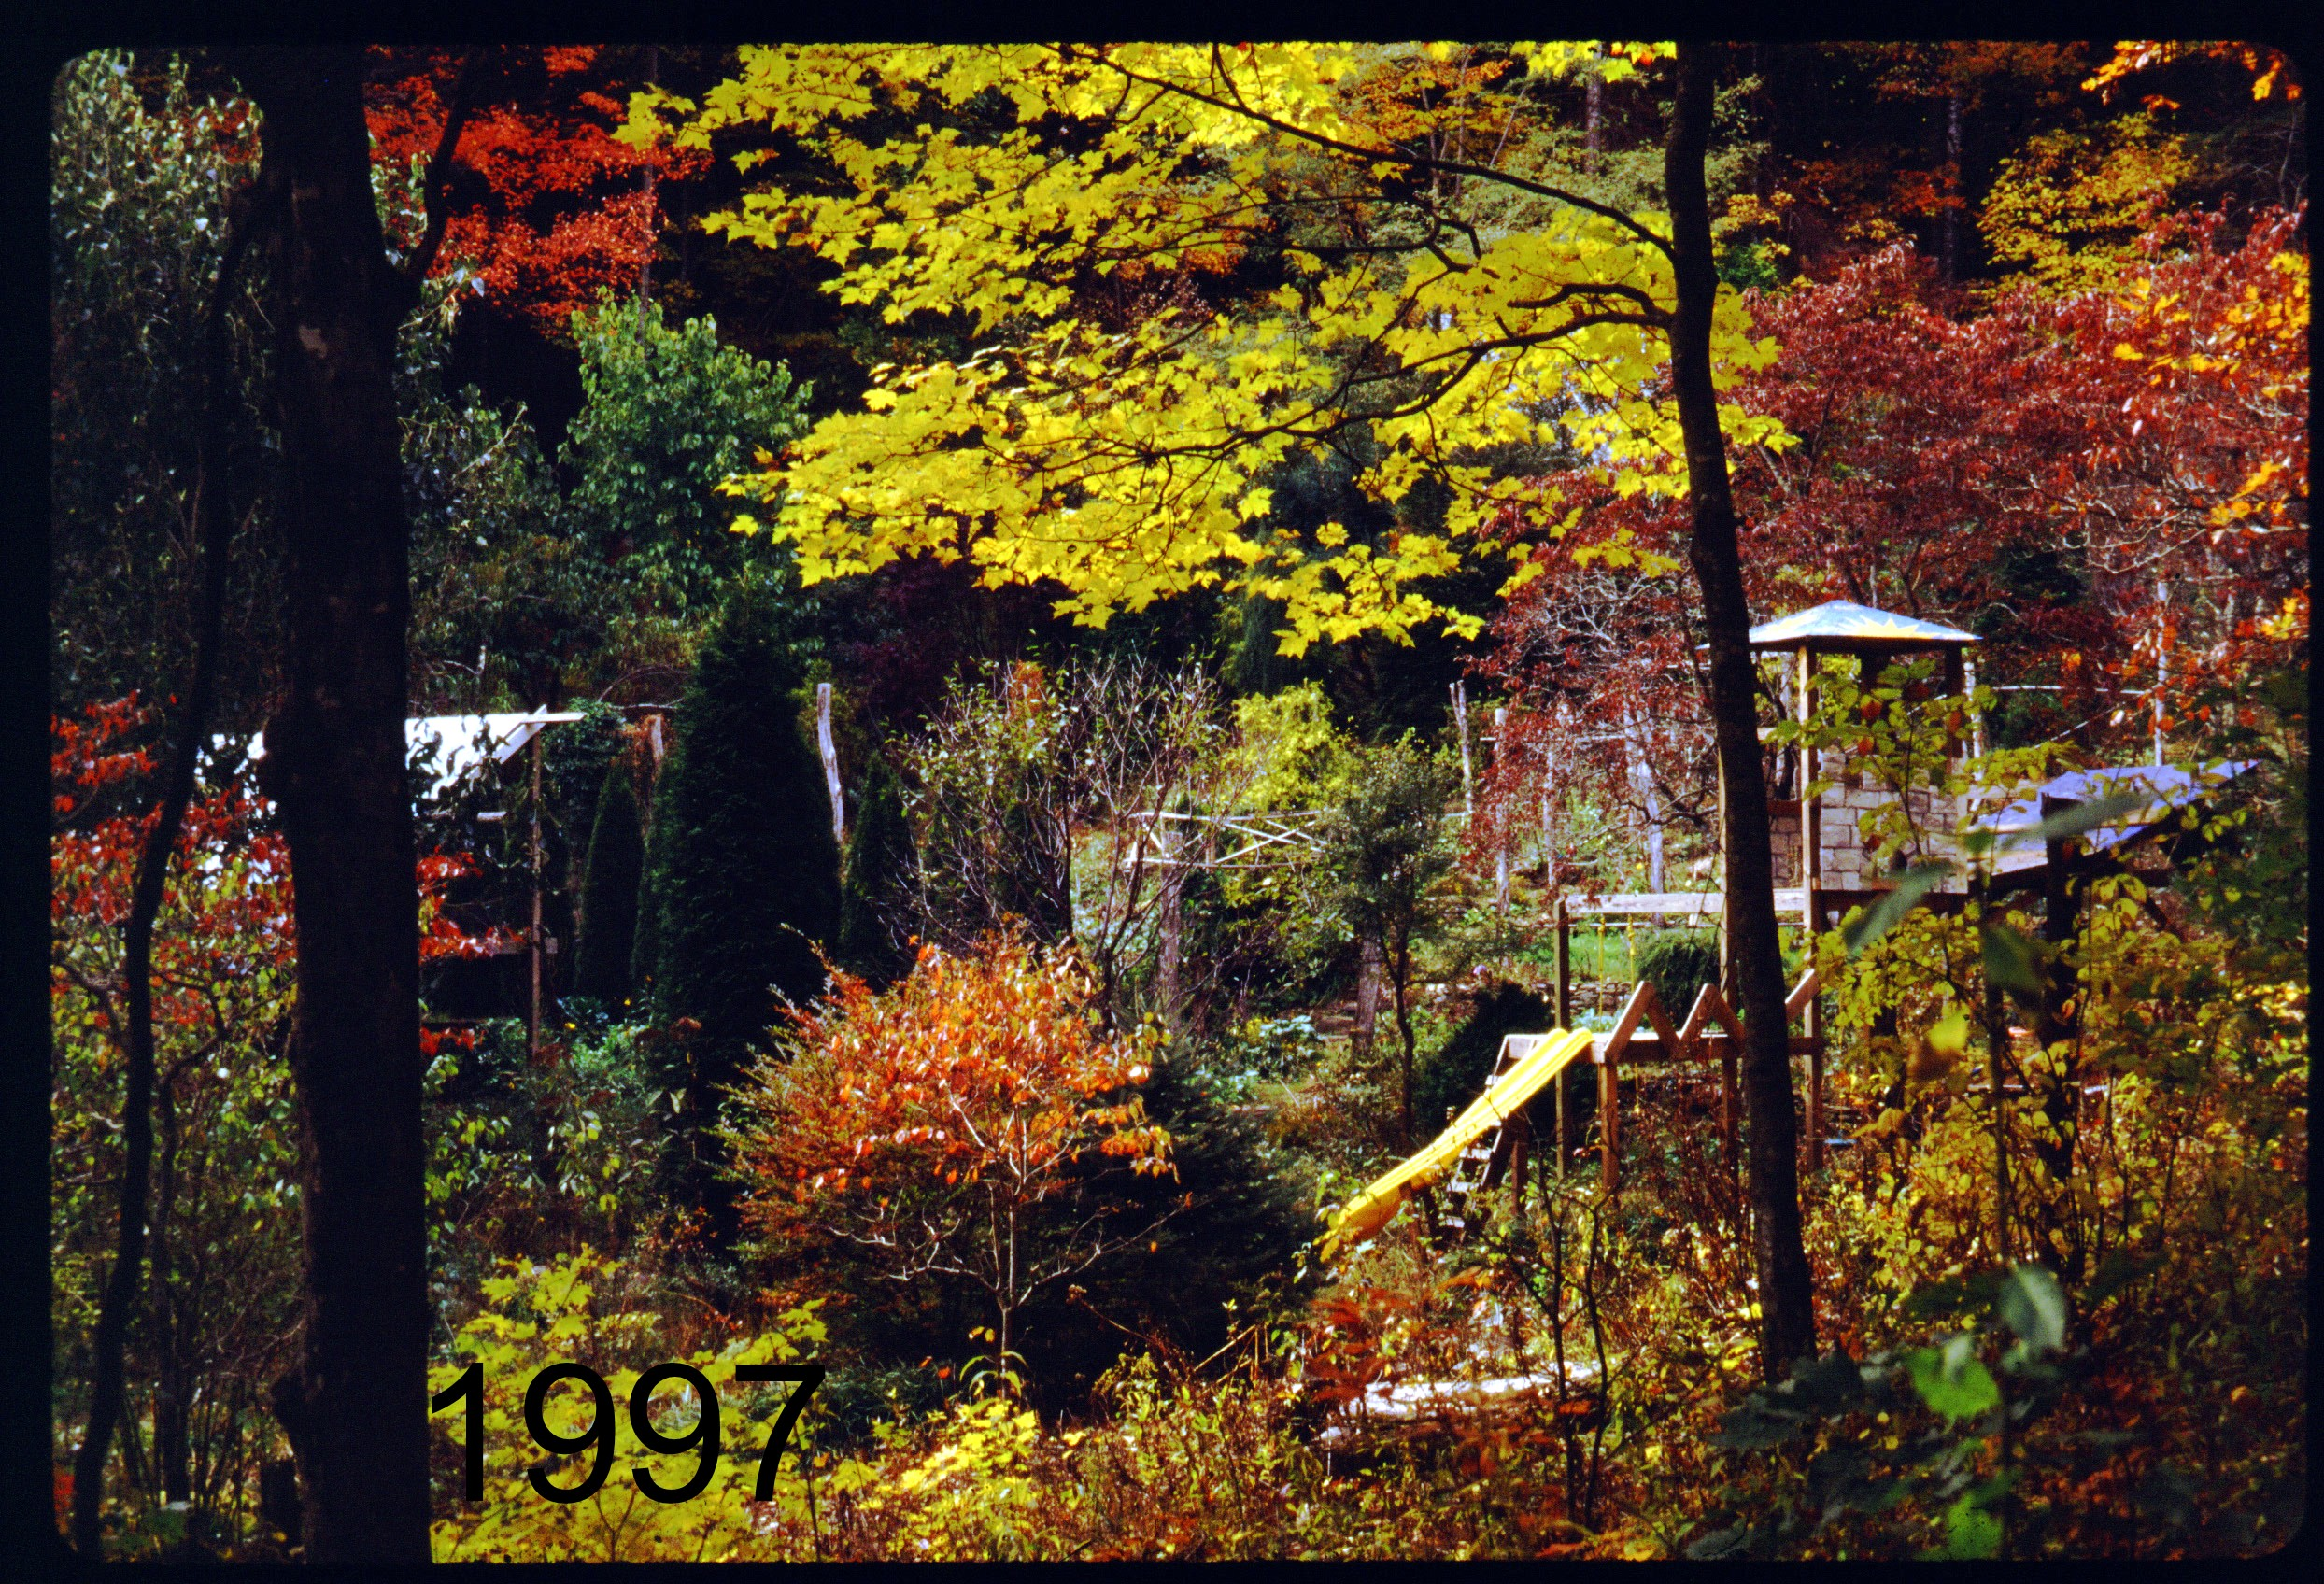 1997 drive - playhouse autumn.jpg